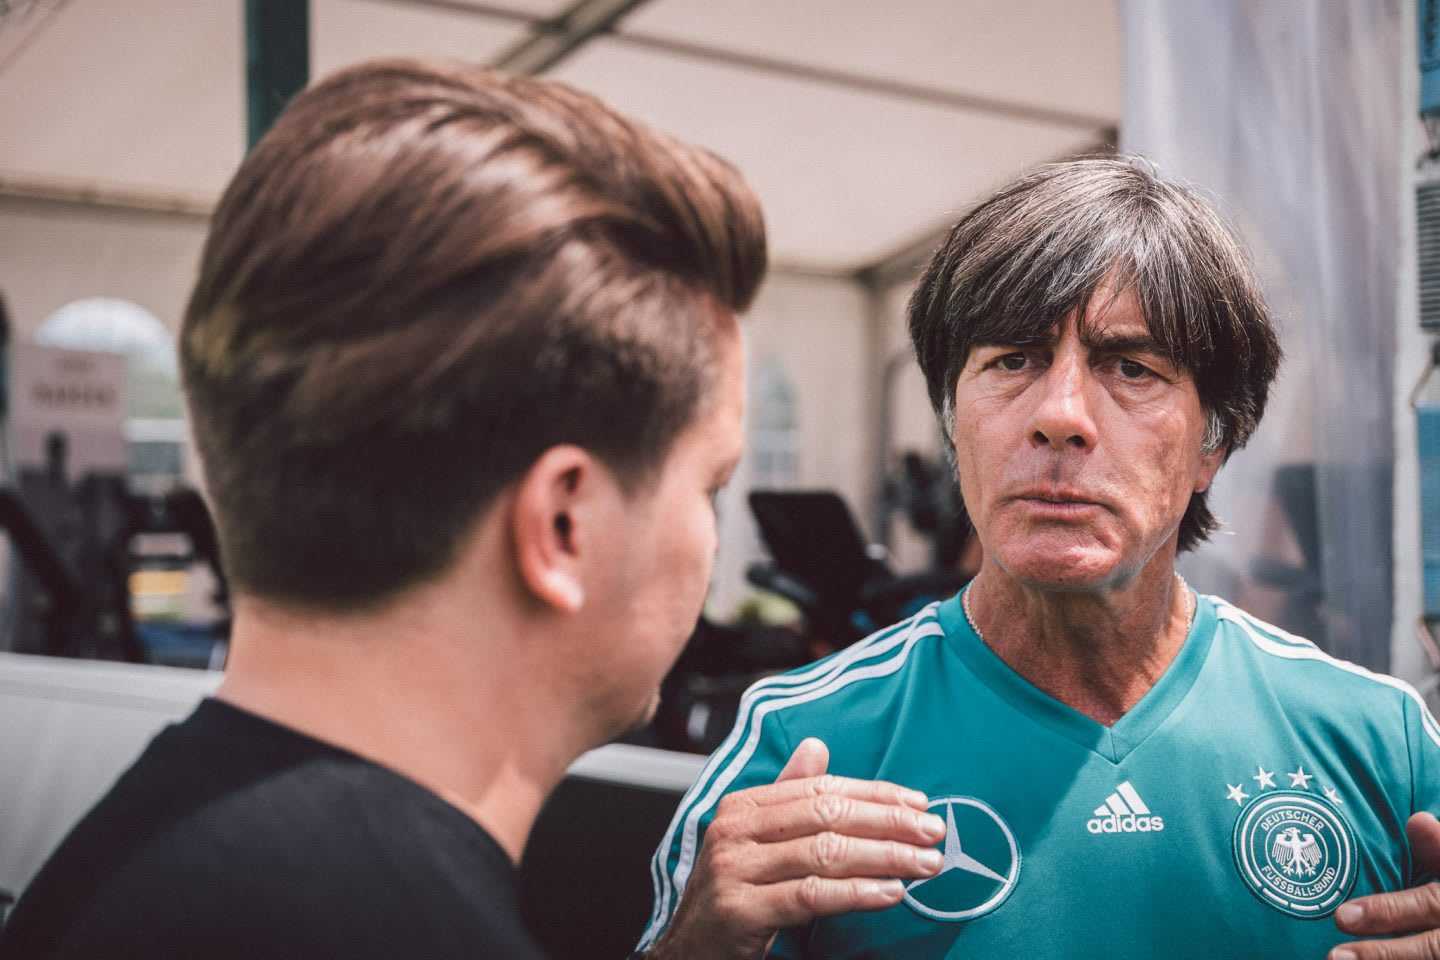 Germany national team coach Joachim Löw talking to a Sports Marketing Manager from adidas. GamePlan A, team, success, 2018 FIFA World Cup Russia, leadership, World Champions